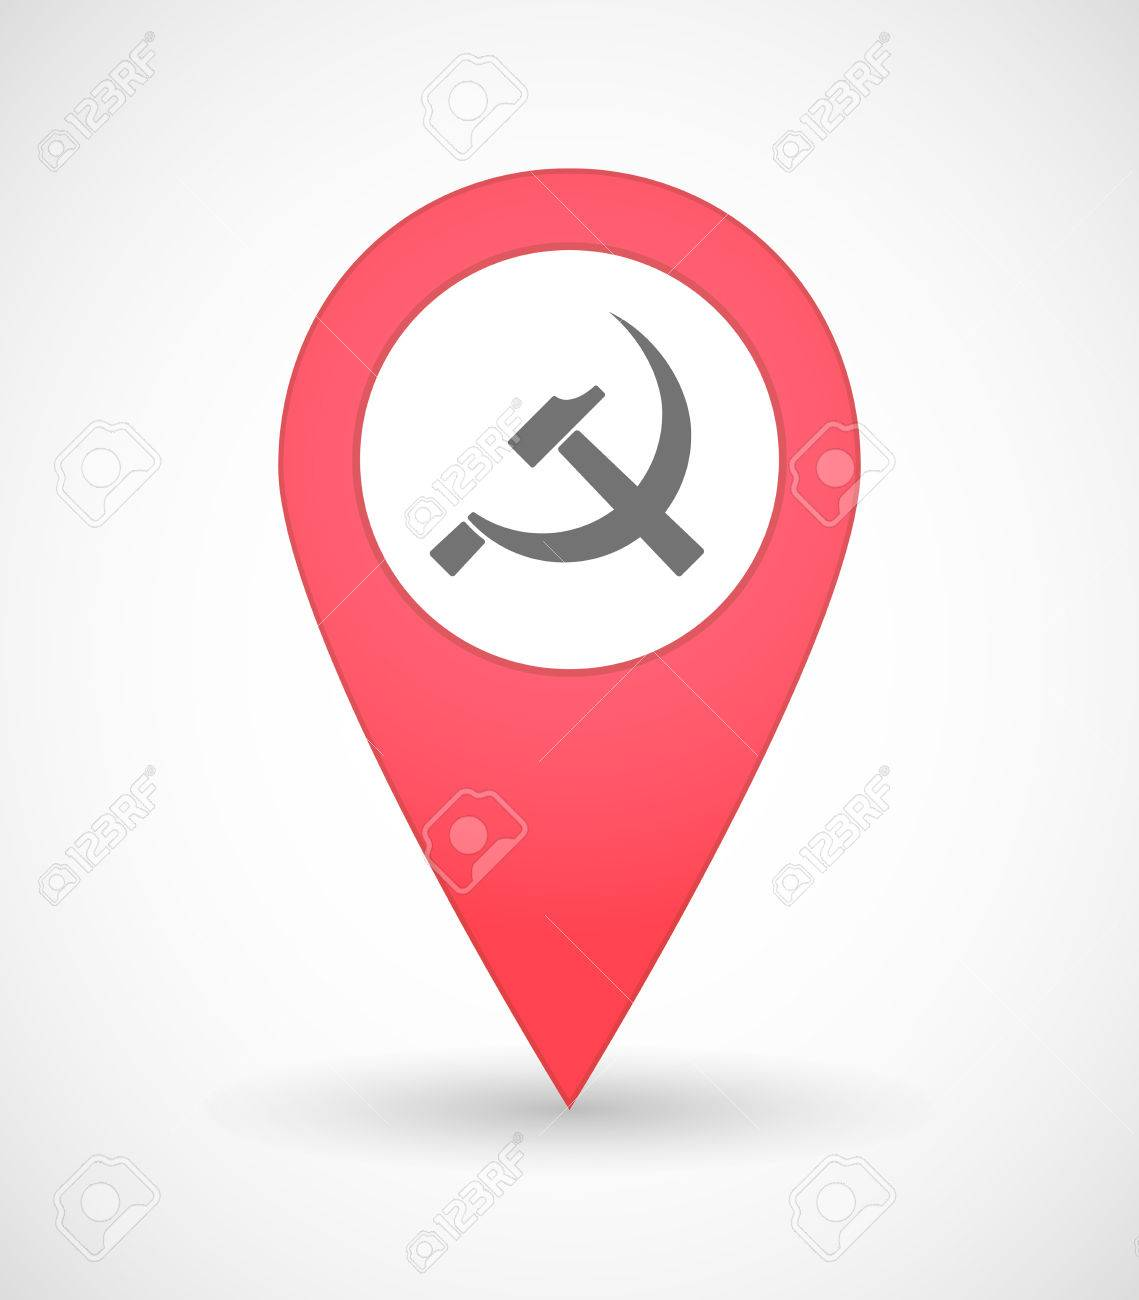 Illustration Of A Map Mark Icon With The Communist Symbol Royalty